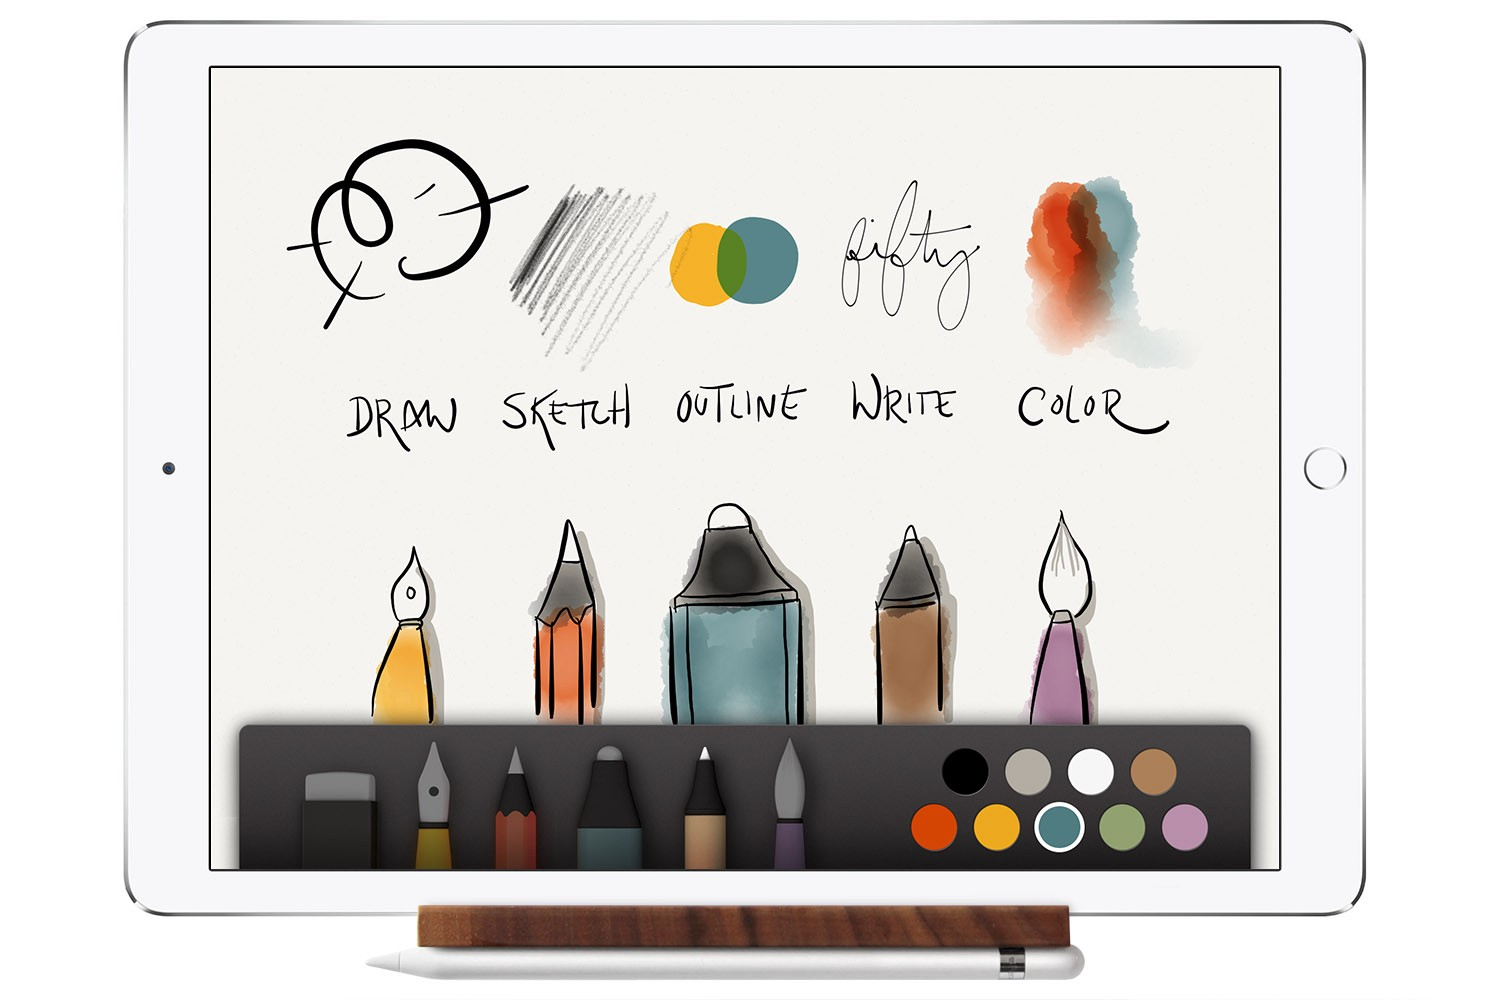 How the iPad, Apple Pencil, and Paper App change a